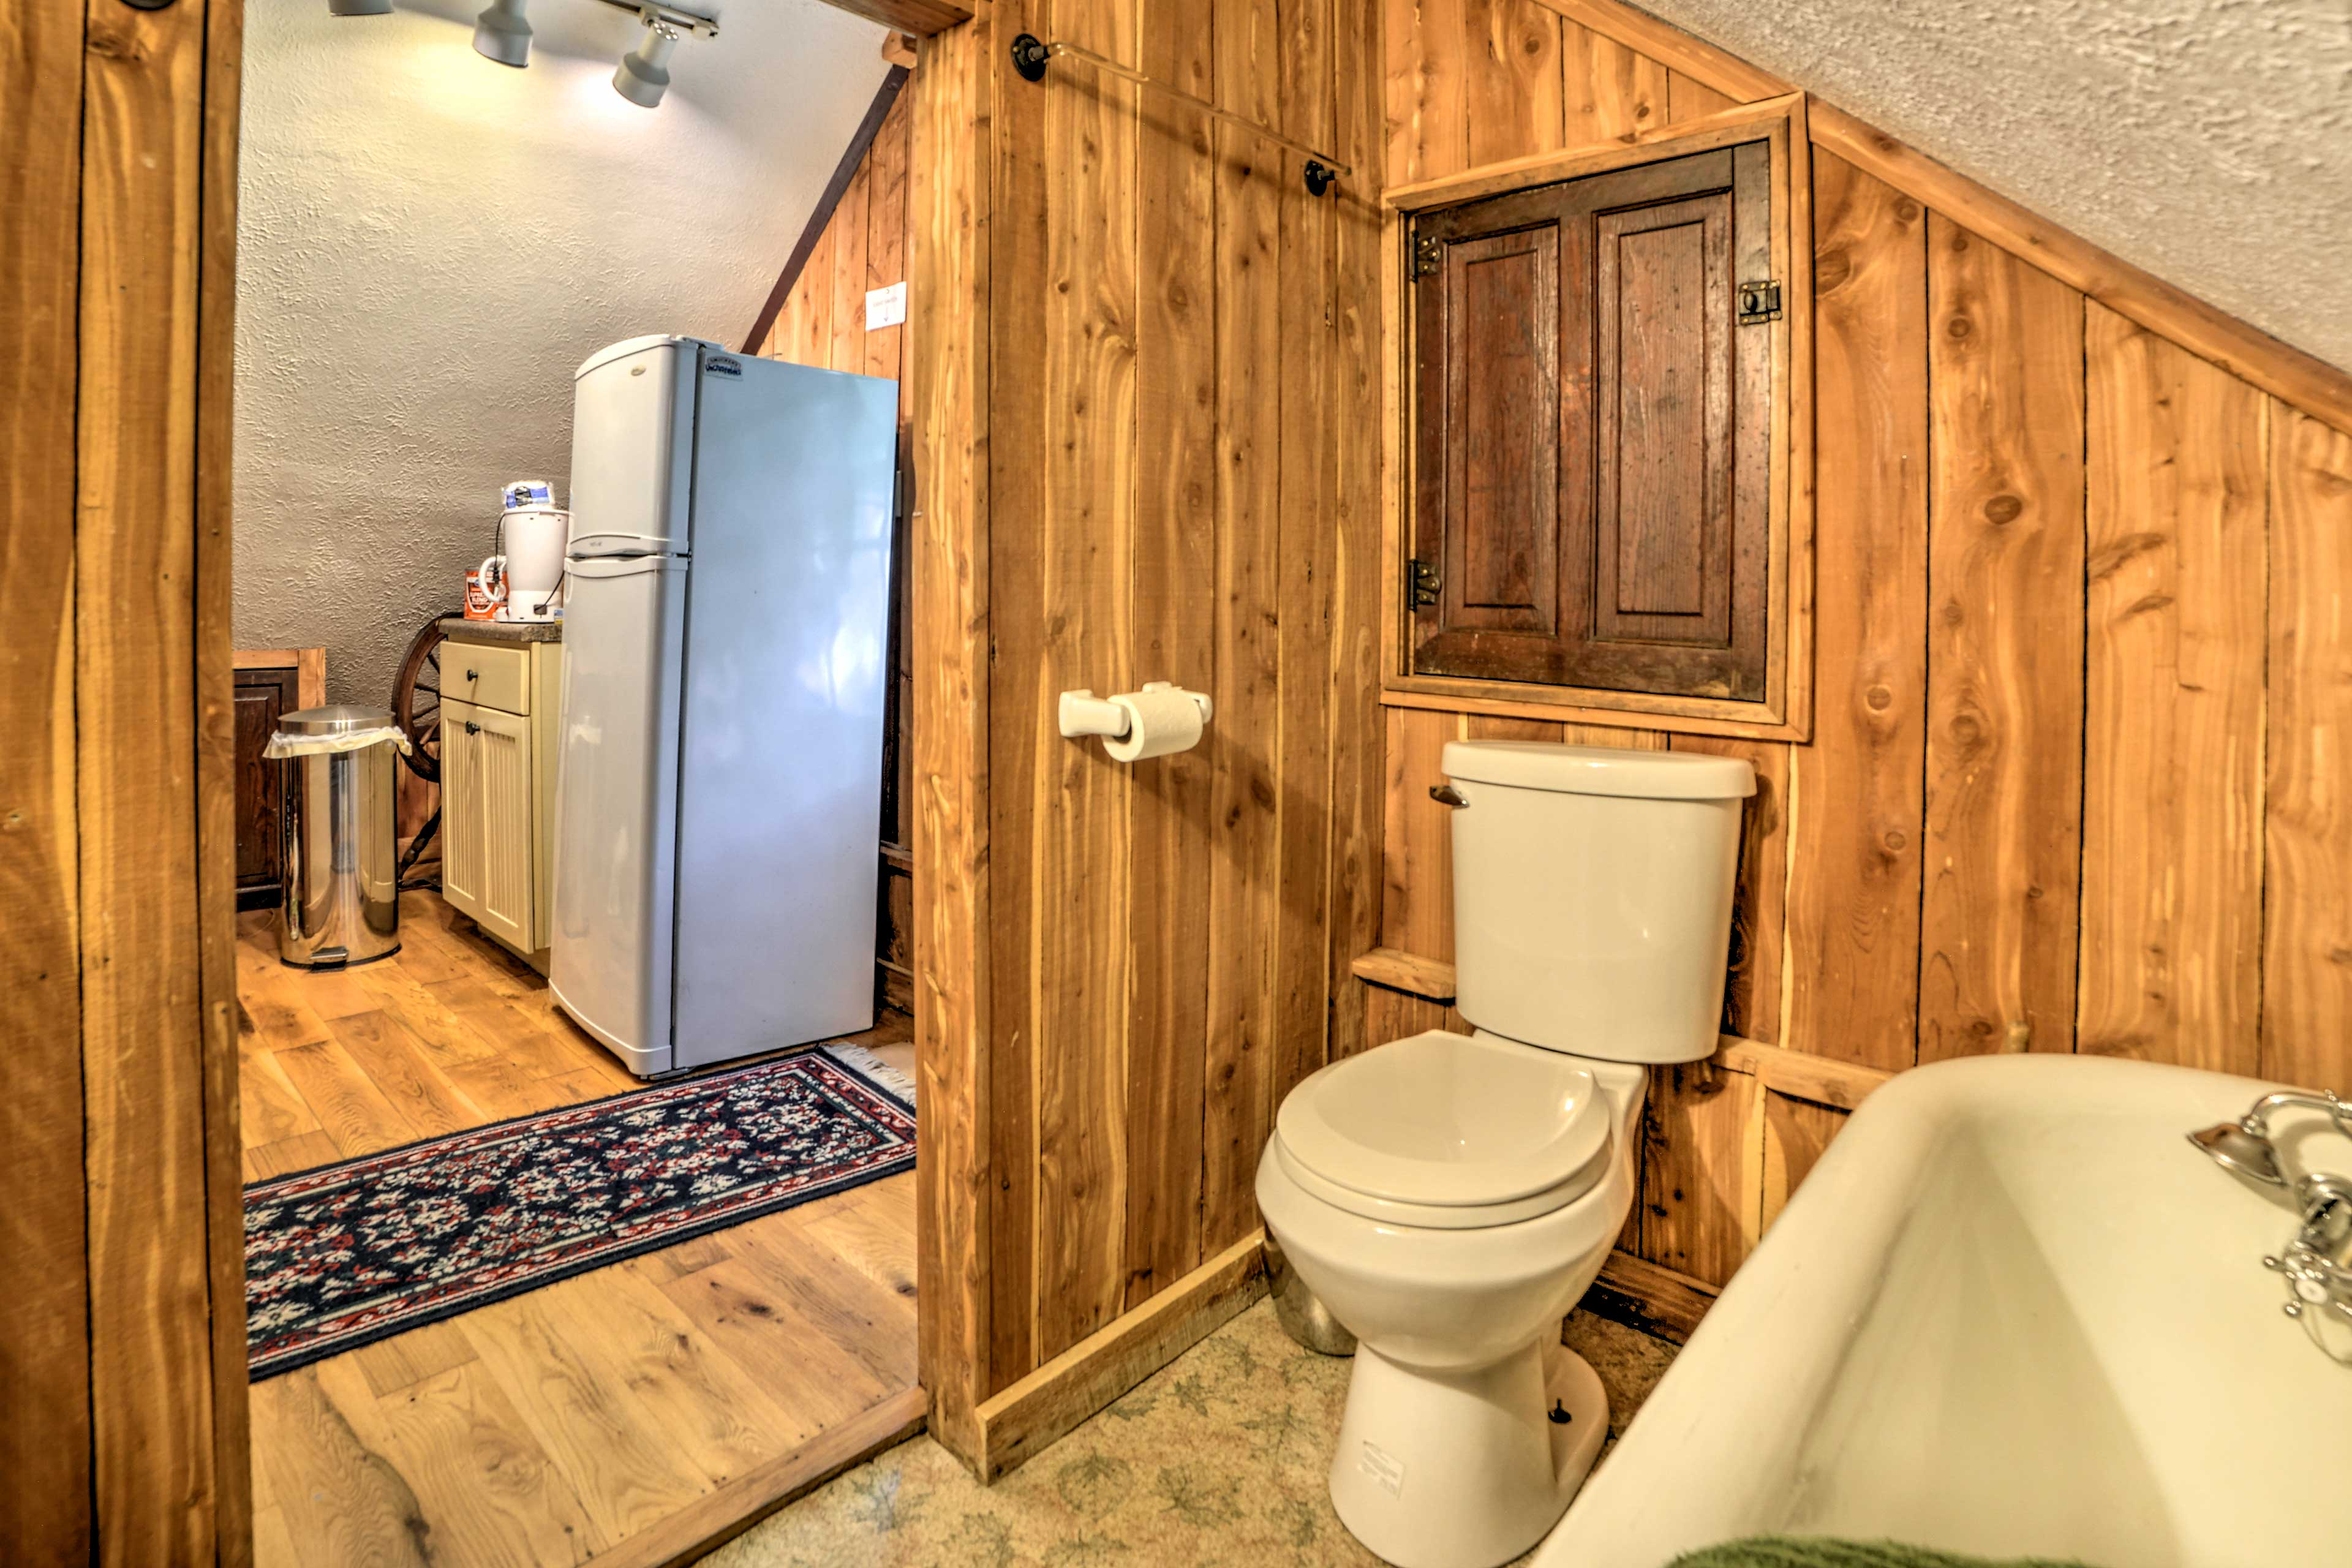 There's a full bathroom off the loft.